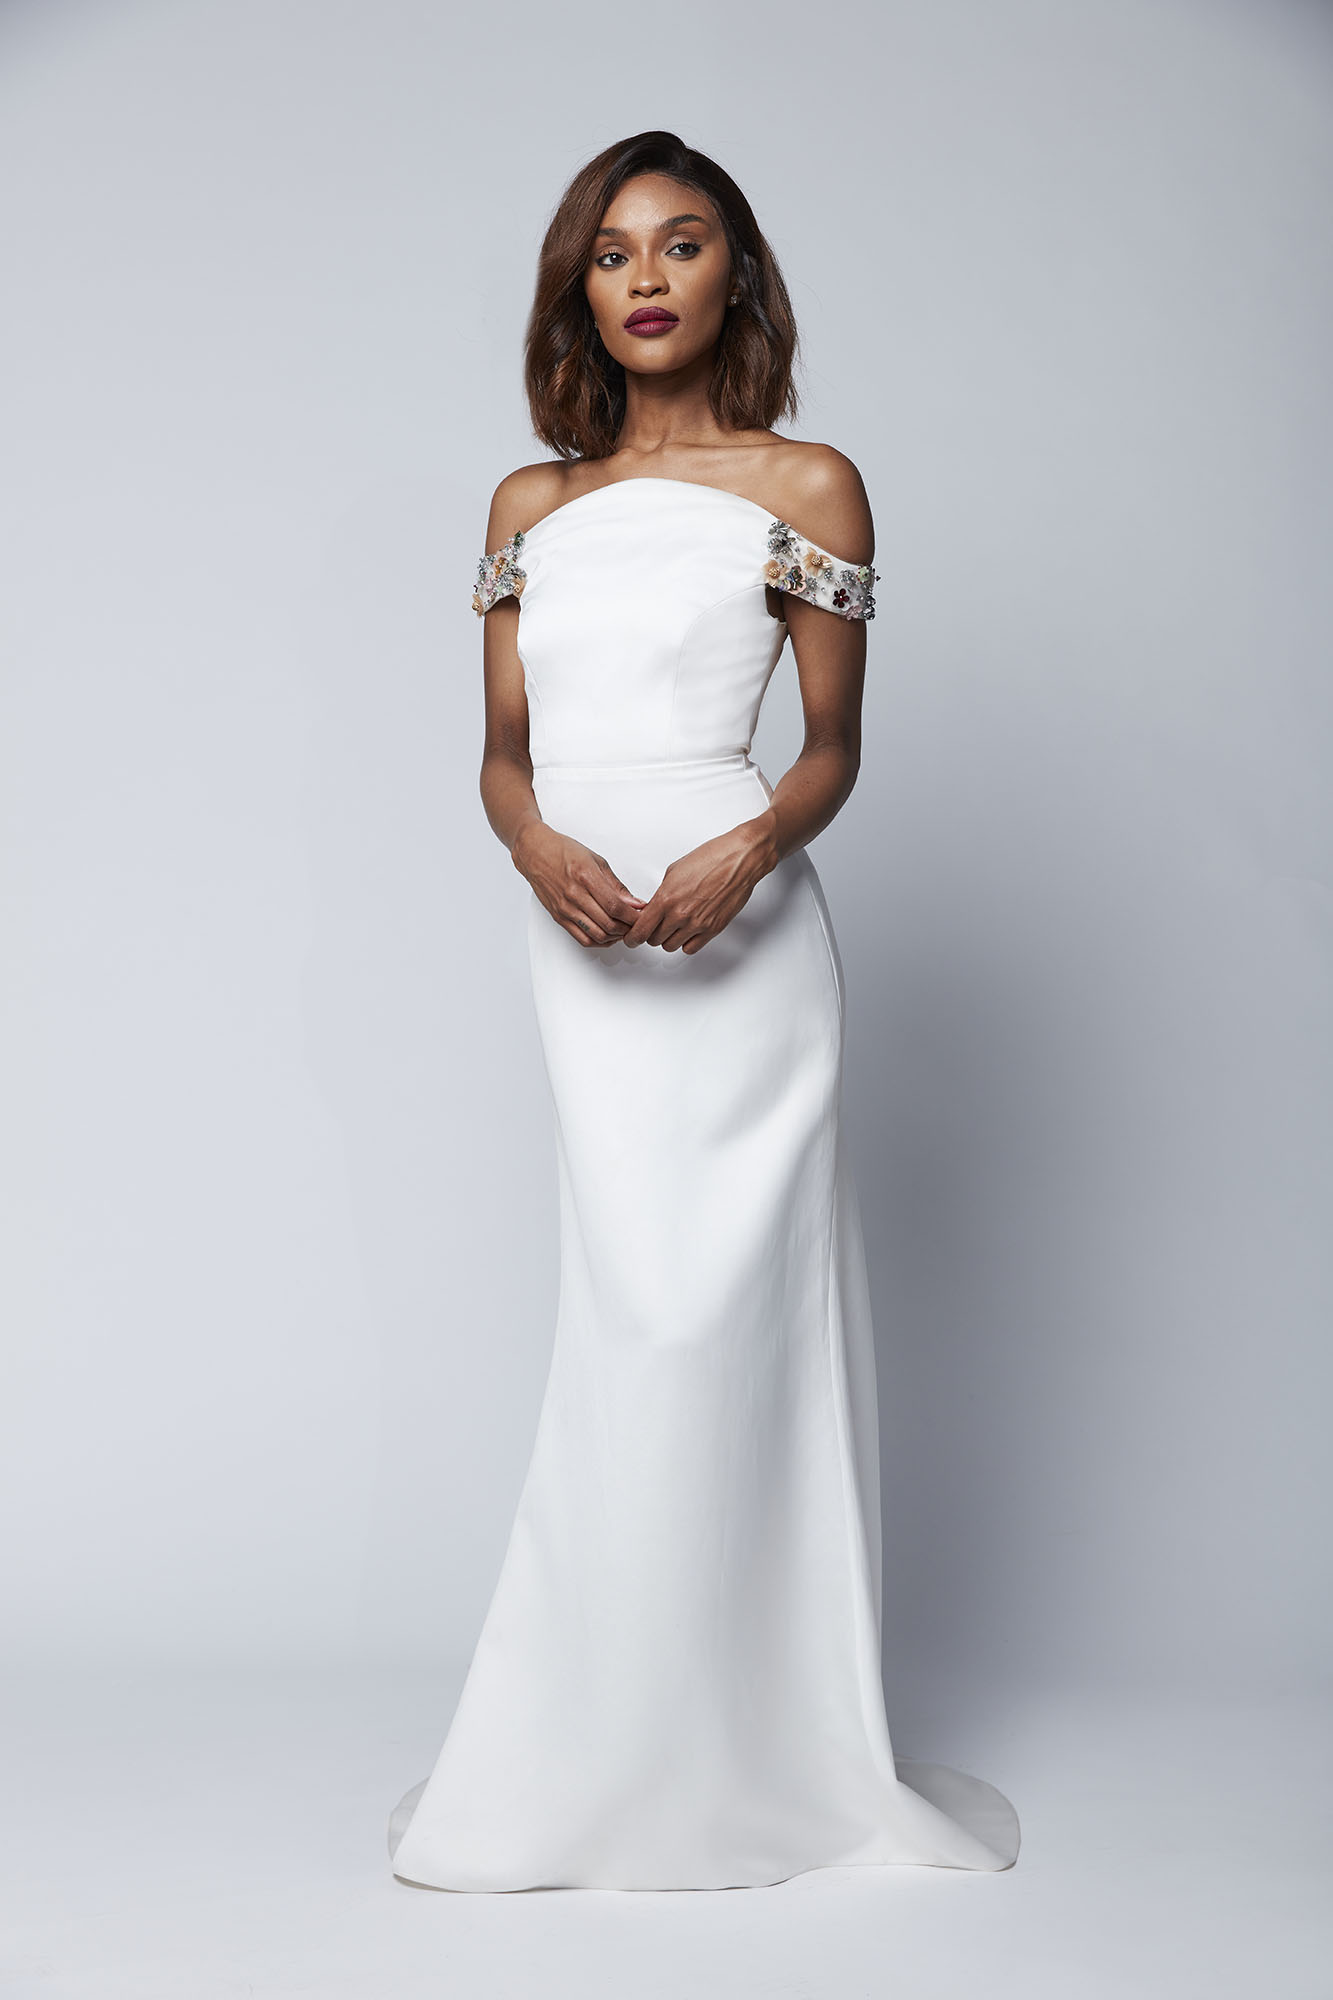 This off the shoulder gown featuring delicate, colorful embroidery is elegance embodied with its simple train and sleek fit.